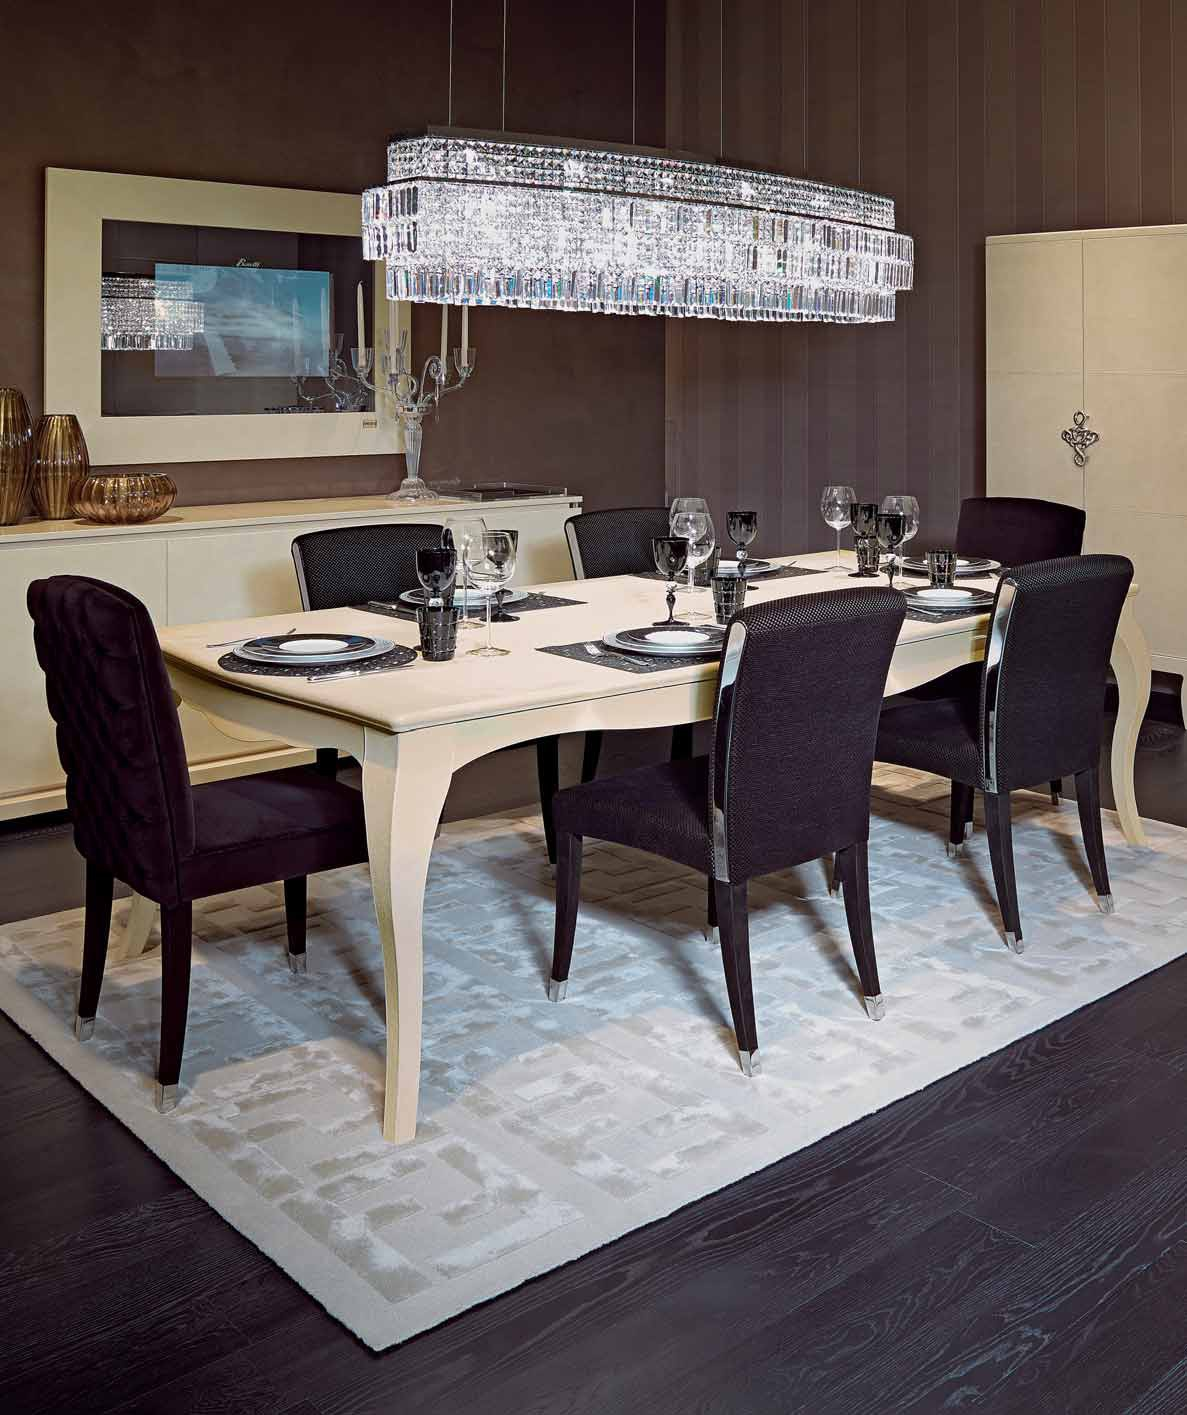 Canova dining table in leather with a frame made of natural wood